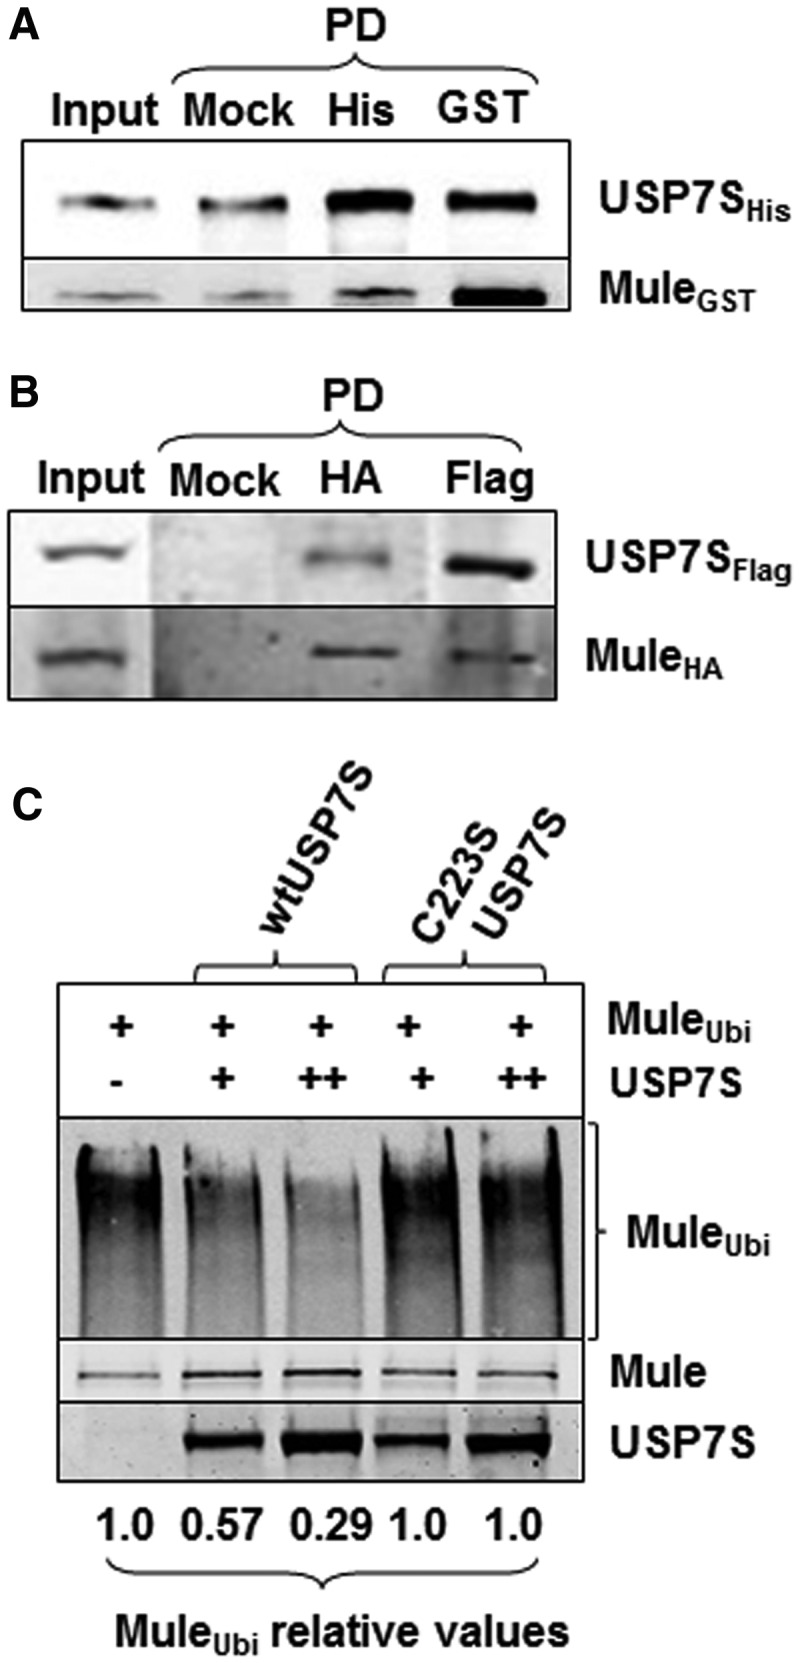 USP7S interacts with Mule and prevents its self-ubiquitylation in vitro. ( A ) Equal amounts (2.5 pmol) of purified recombinant His-tagged USP7S and GST-tagged Mule were incubated in buffer containing 50 mM Tris–HCl, pH 8.0, 50 mM <t>KCl,</t> 1 mM EDTA, 1 mM <t>DTT</t> for 30 min at room temperature with shaking. USP7S and Mule were then pulled down using either magnetic beads as a control (Mock PD, 100%) or using magnetic Ni-NTA agarose beads (His PD, 100%) or GST agarose beads (GST PD, 100%), respectively. The beads were boiled in SDS–PAGE sample buffer for 5 min, and proteins were separated by 10% SDS–PAGE and analysed using USP7S and Mule antibodies (10% of the input is loaded). ( B ) HeLa cells were simultaneously transfected with USP7S and Mule (1 pmol each) expression plasmids, whole-cell extracts were prepared and used to pull down HA-tagged Mule or Flag-tagged USP7S using either magnetic beads as a control (Mock PD, 100%), HA- (HA PD, 100%) or Flag-agarose (Flag PD, 100%) beads. Proteins were separated by 4–20% SDS–PAGE and analysed using USP7S and Mule antibodies (15% of the input is loaded). ( C ) In vitro deubiquitylation of self-ubiquitylated Mule HECT-domain by recombinant wild-type USP7S protein (wtUSP7S) or its inactive mutant (C223S USP7S) analysed by western blotting. Equal loading of the enzyme is demonstrated using USP7S antibodies.